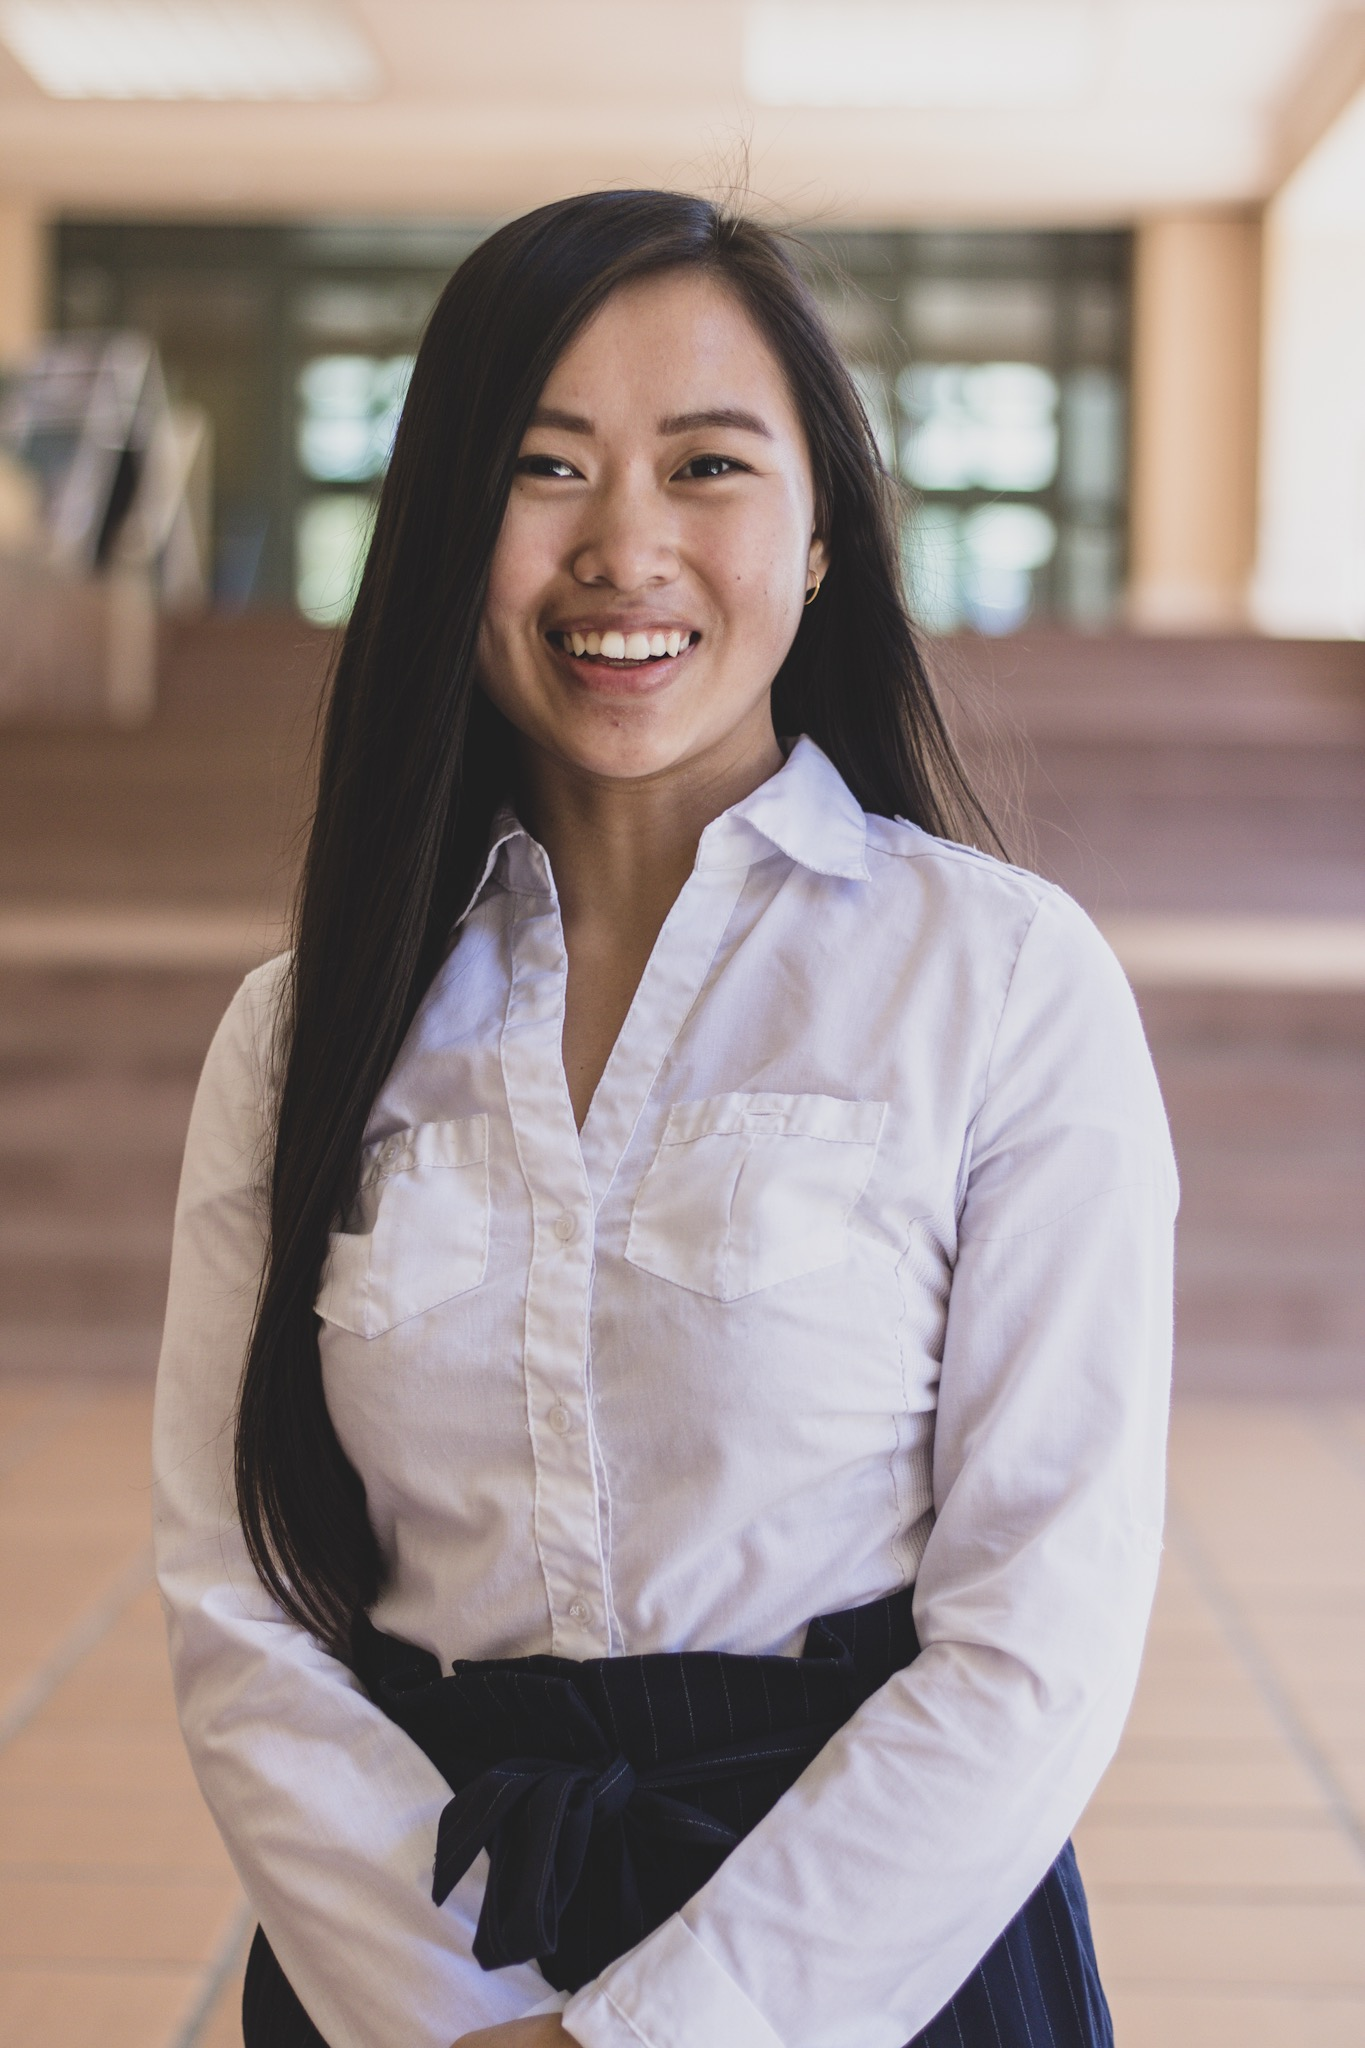 Sally Huang  Director  I wanted to test my knowledge and skills in marketing into the tech world, which is a completely new space for me. I also felt I shared similar values with CPH toward bettering the world and the people in this world.  I'm a student fellow at the Business Analytics Agency, the Director of Public Relations at the Cal Poly American Marketing Association, and a Study Abroad Ambassador at Cal Poly. On the side, I dabble in photography and love food!   LinkedIn